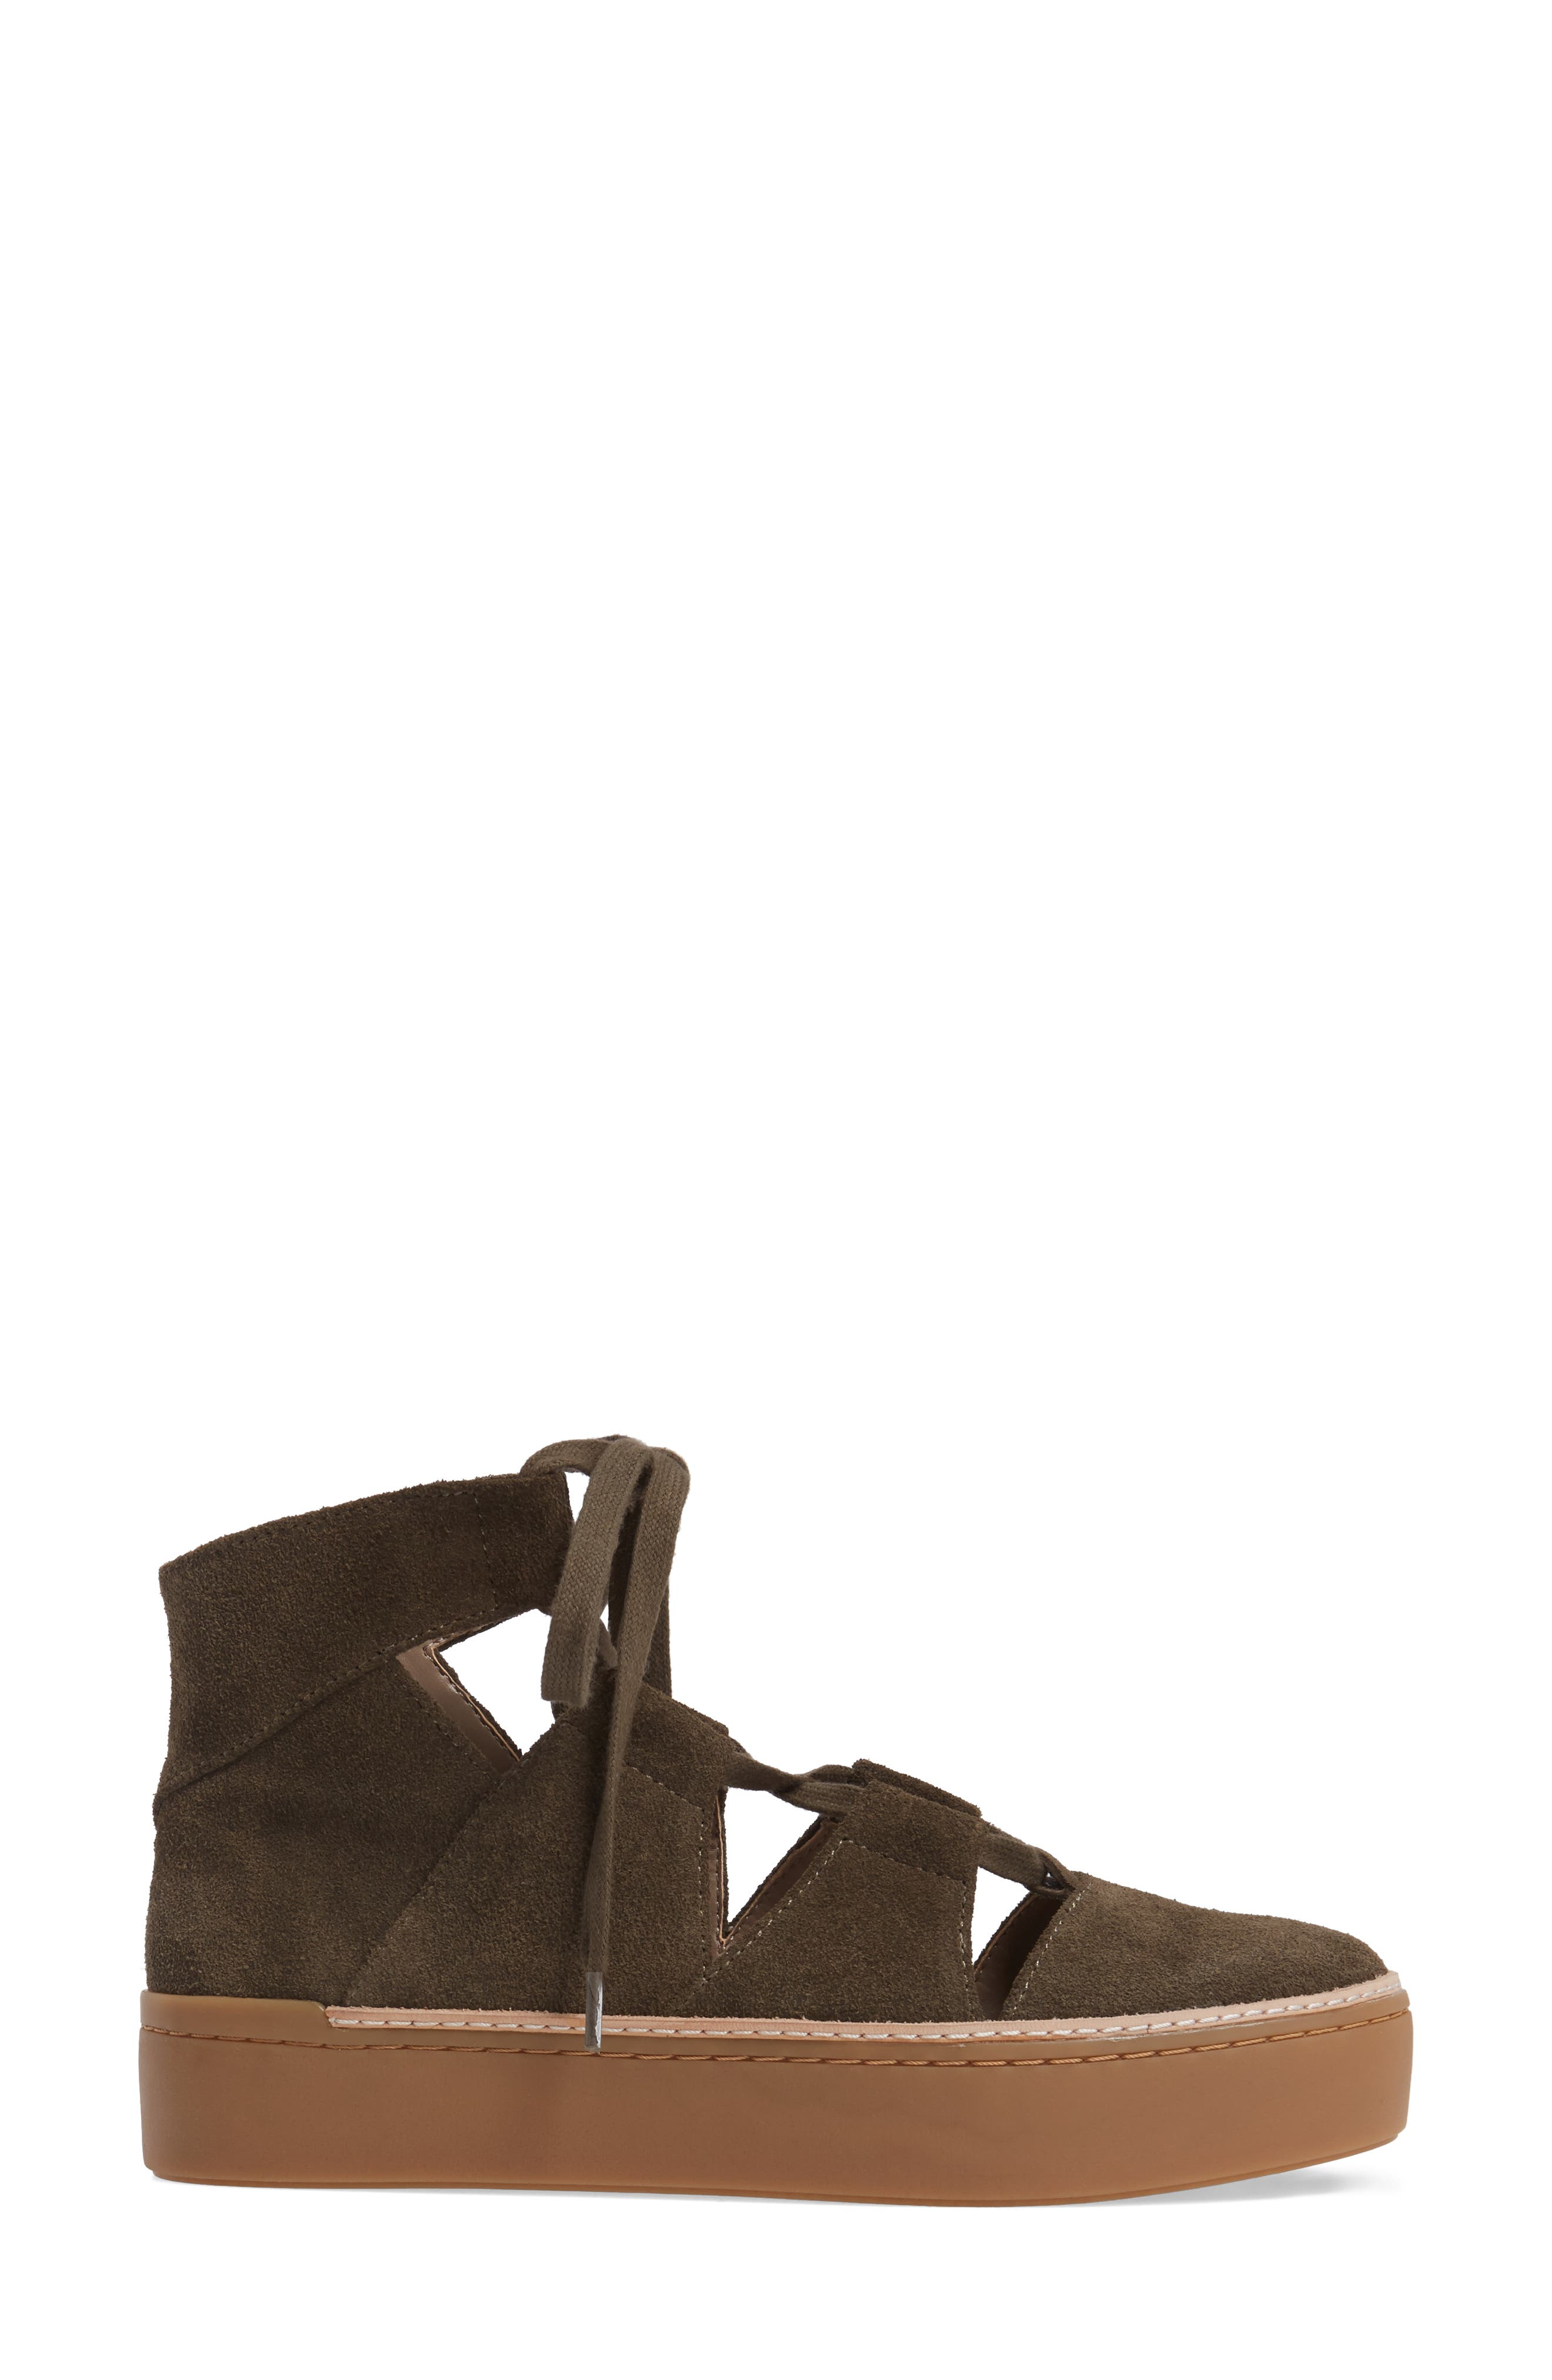 M4D3 Savanah Ghillie Platform Sneaker,                             Alternate thumbnail 3, color,                             DEEP TAUPE LEATHER